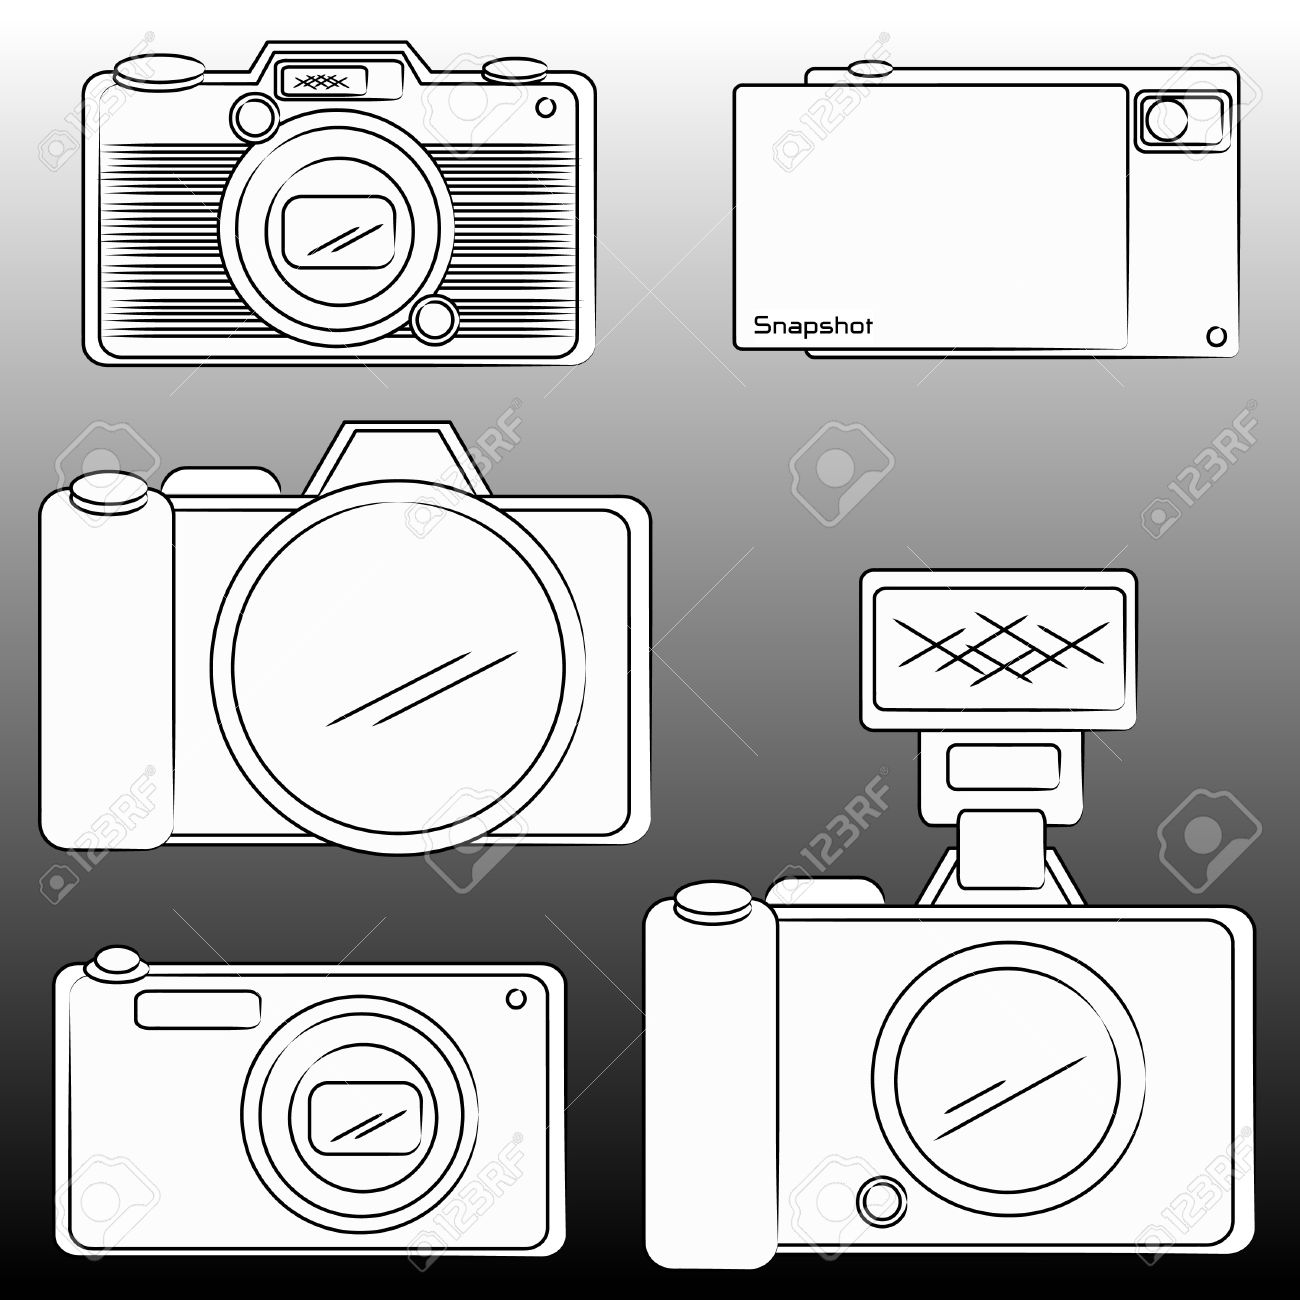 1300x1300 The Pencil Sketch Of Dslr And Camera Royalty Free Cliparts